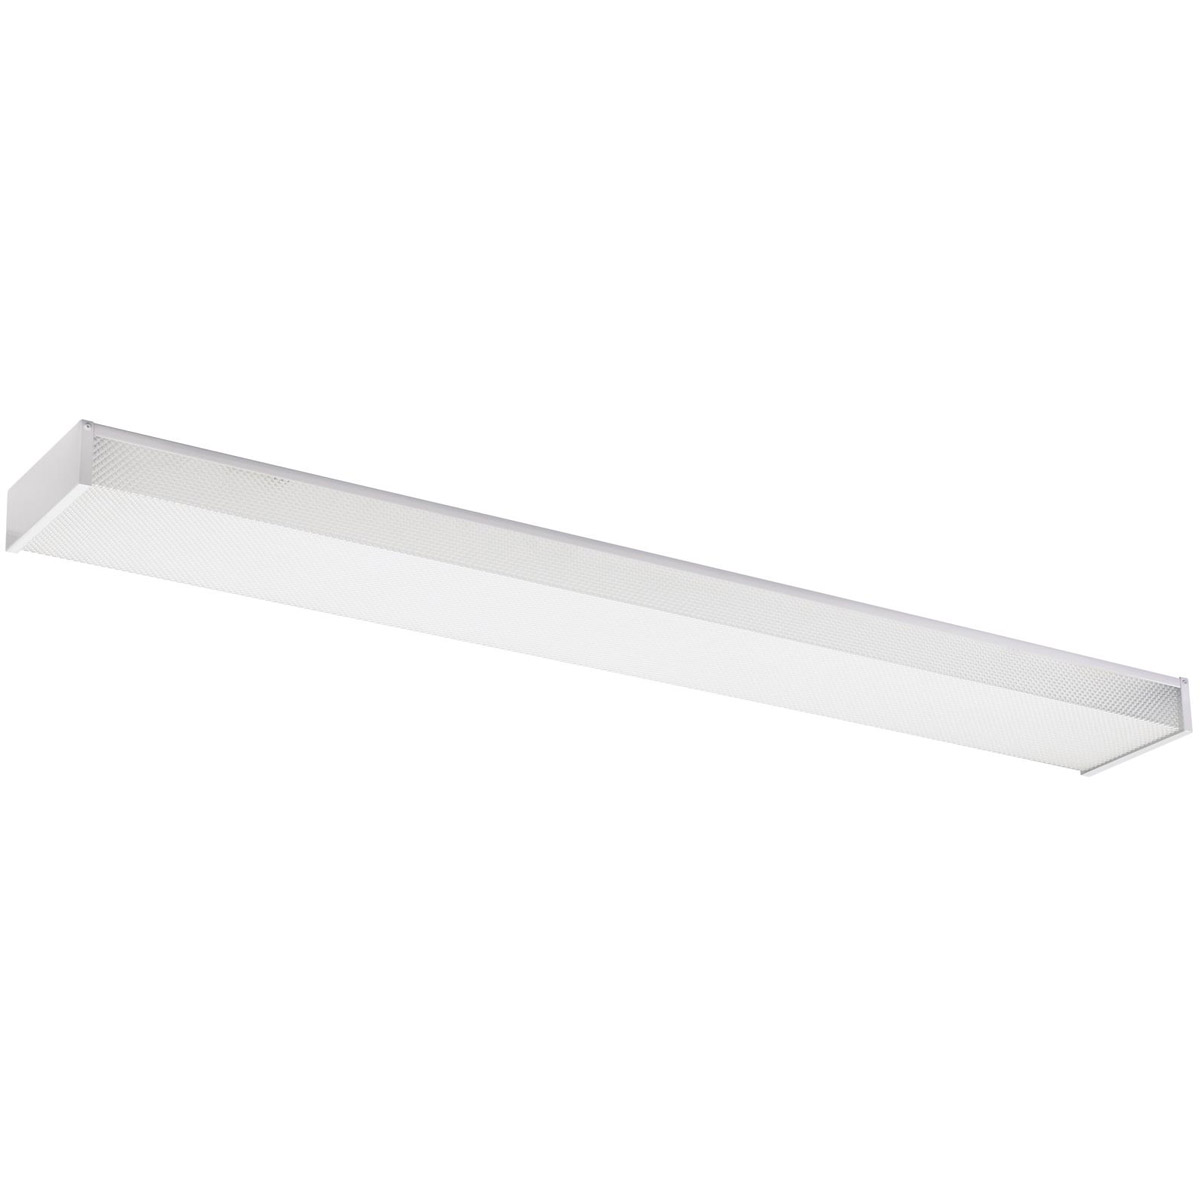 Sea Gull Lighting Signature 2 Light Fluorescent Flush Mount in White 59132LE-15